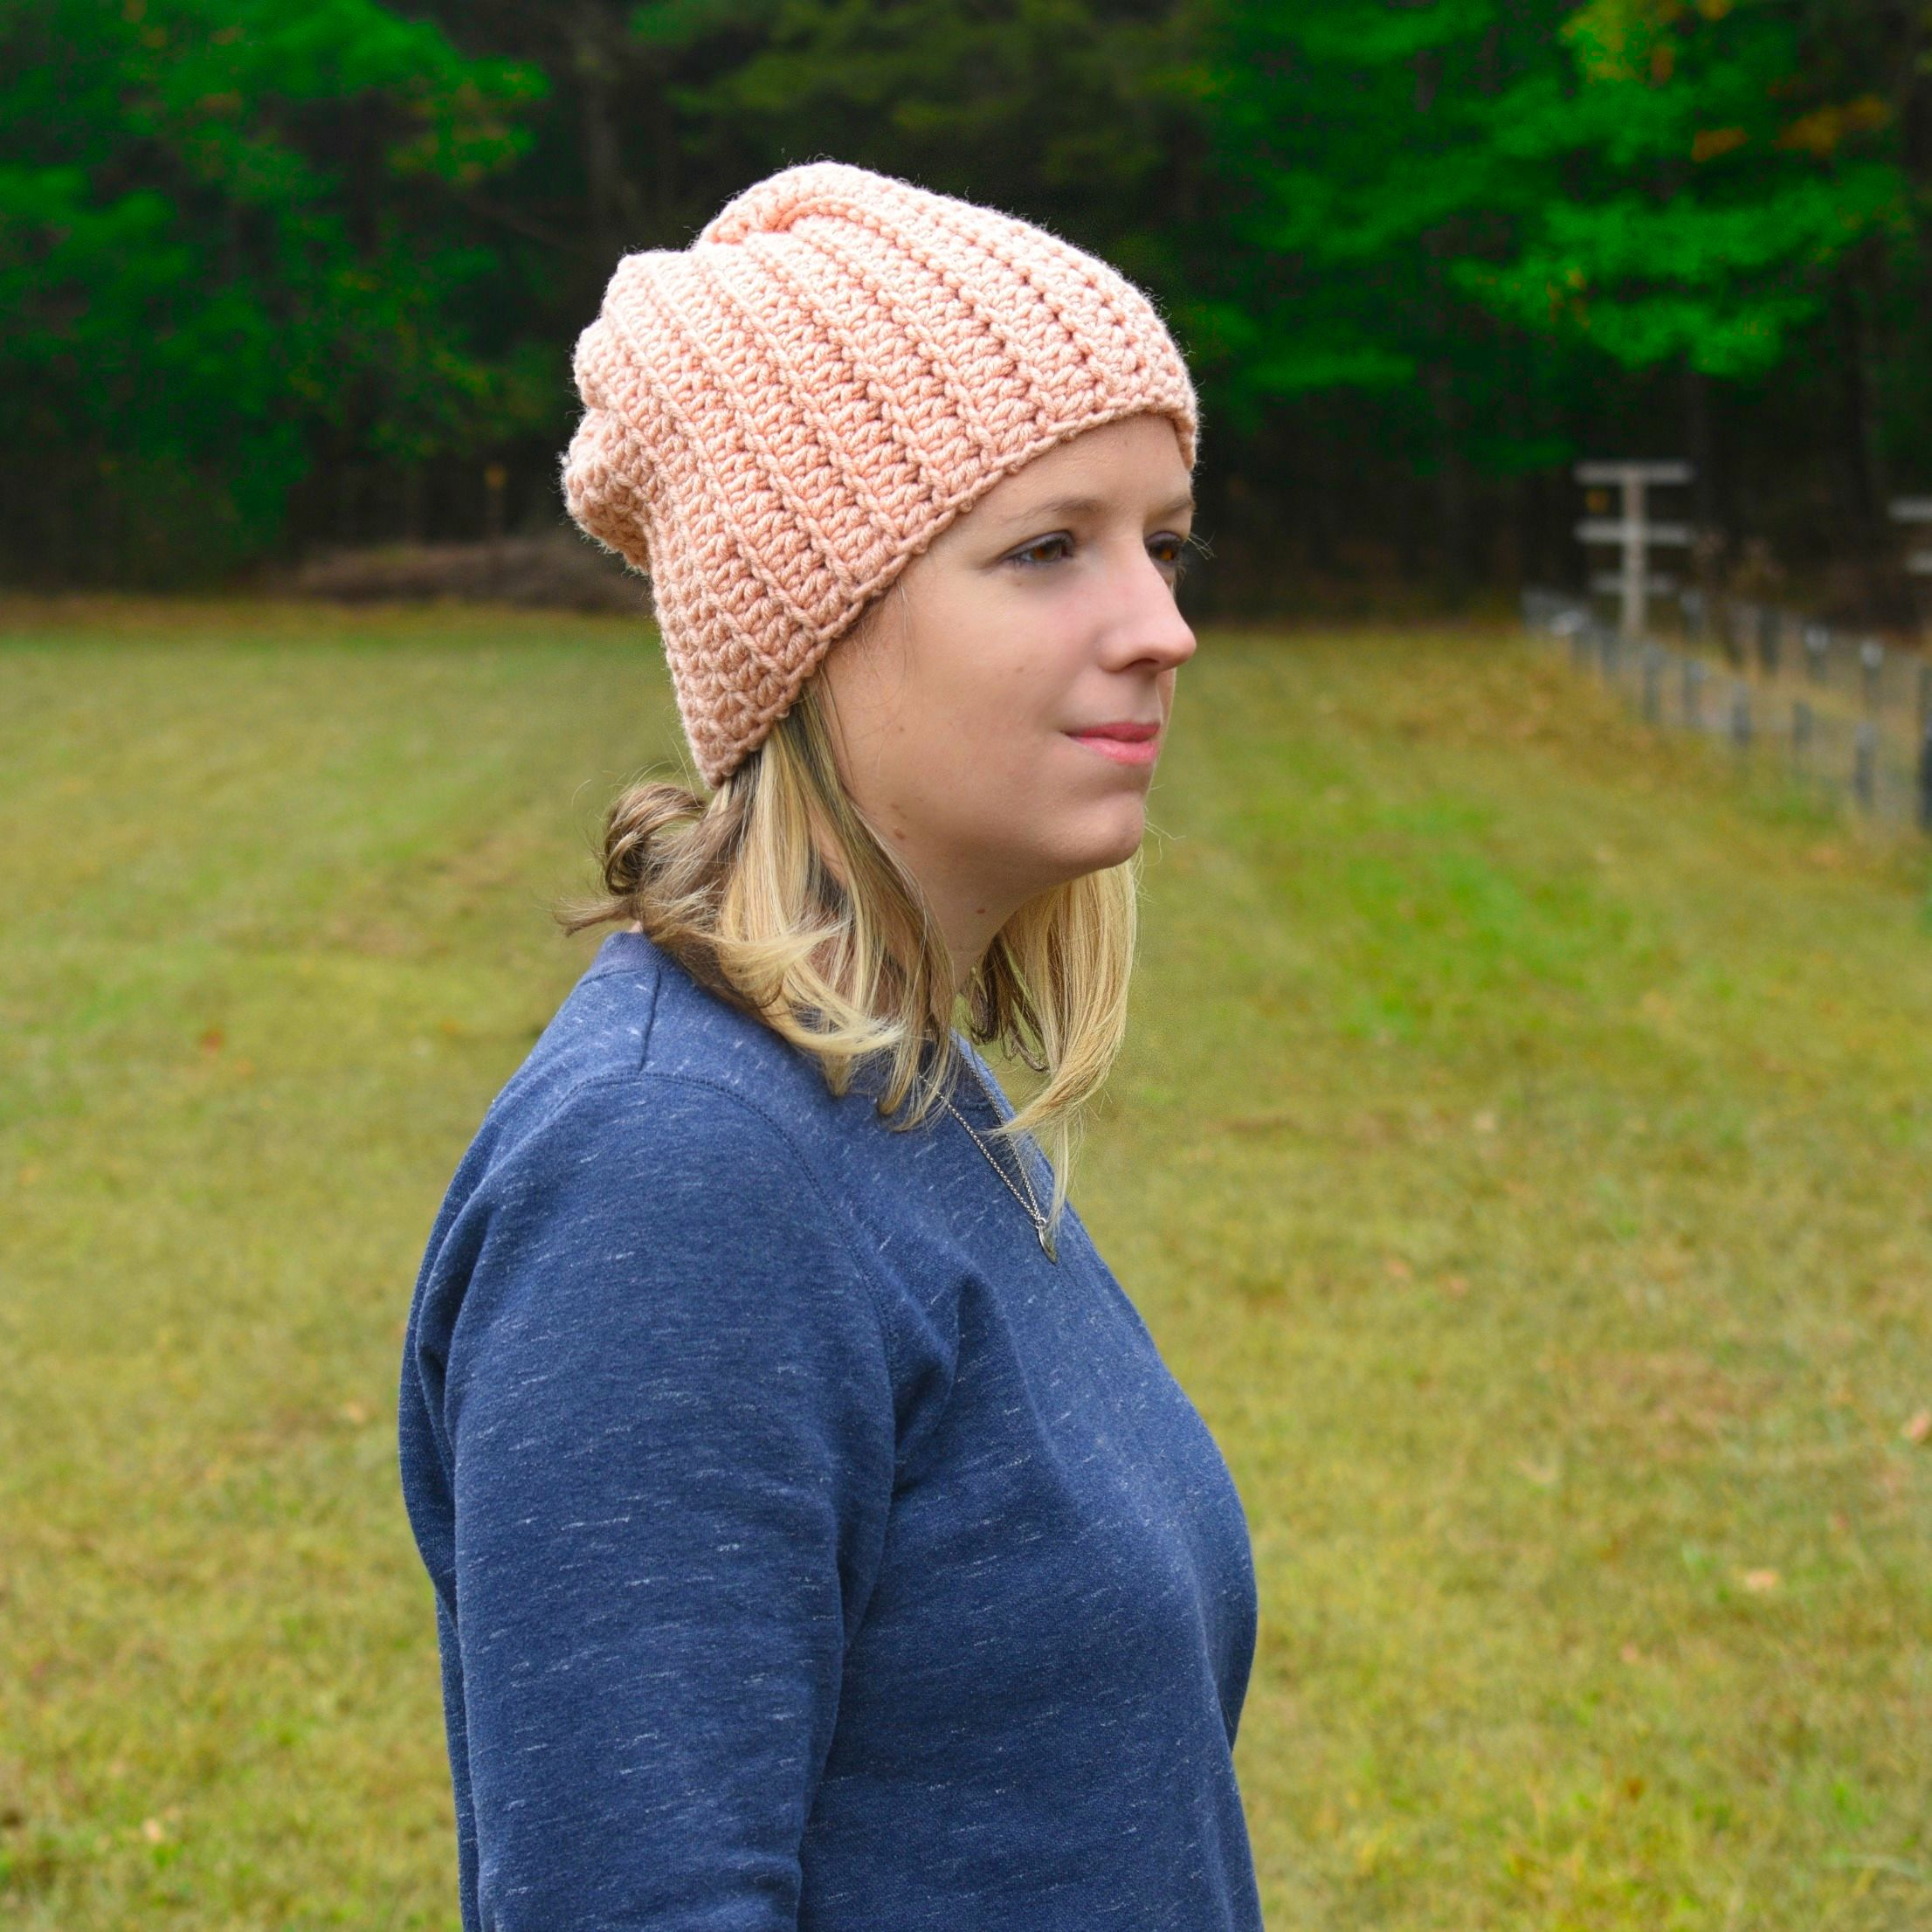 Rockport Beanie in Rows